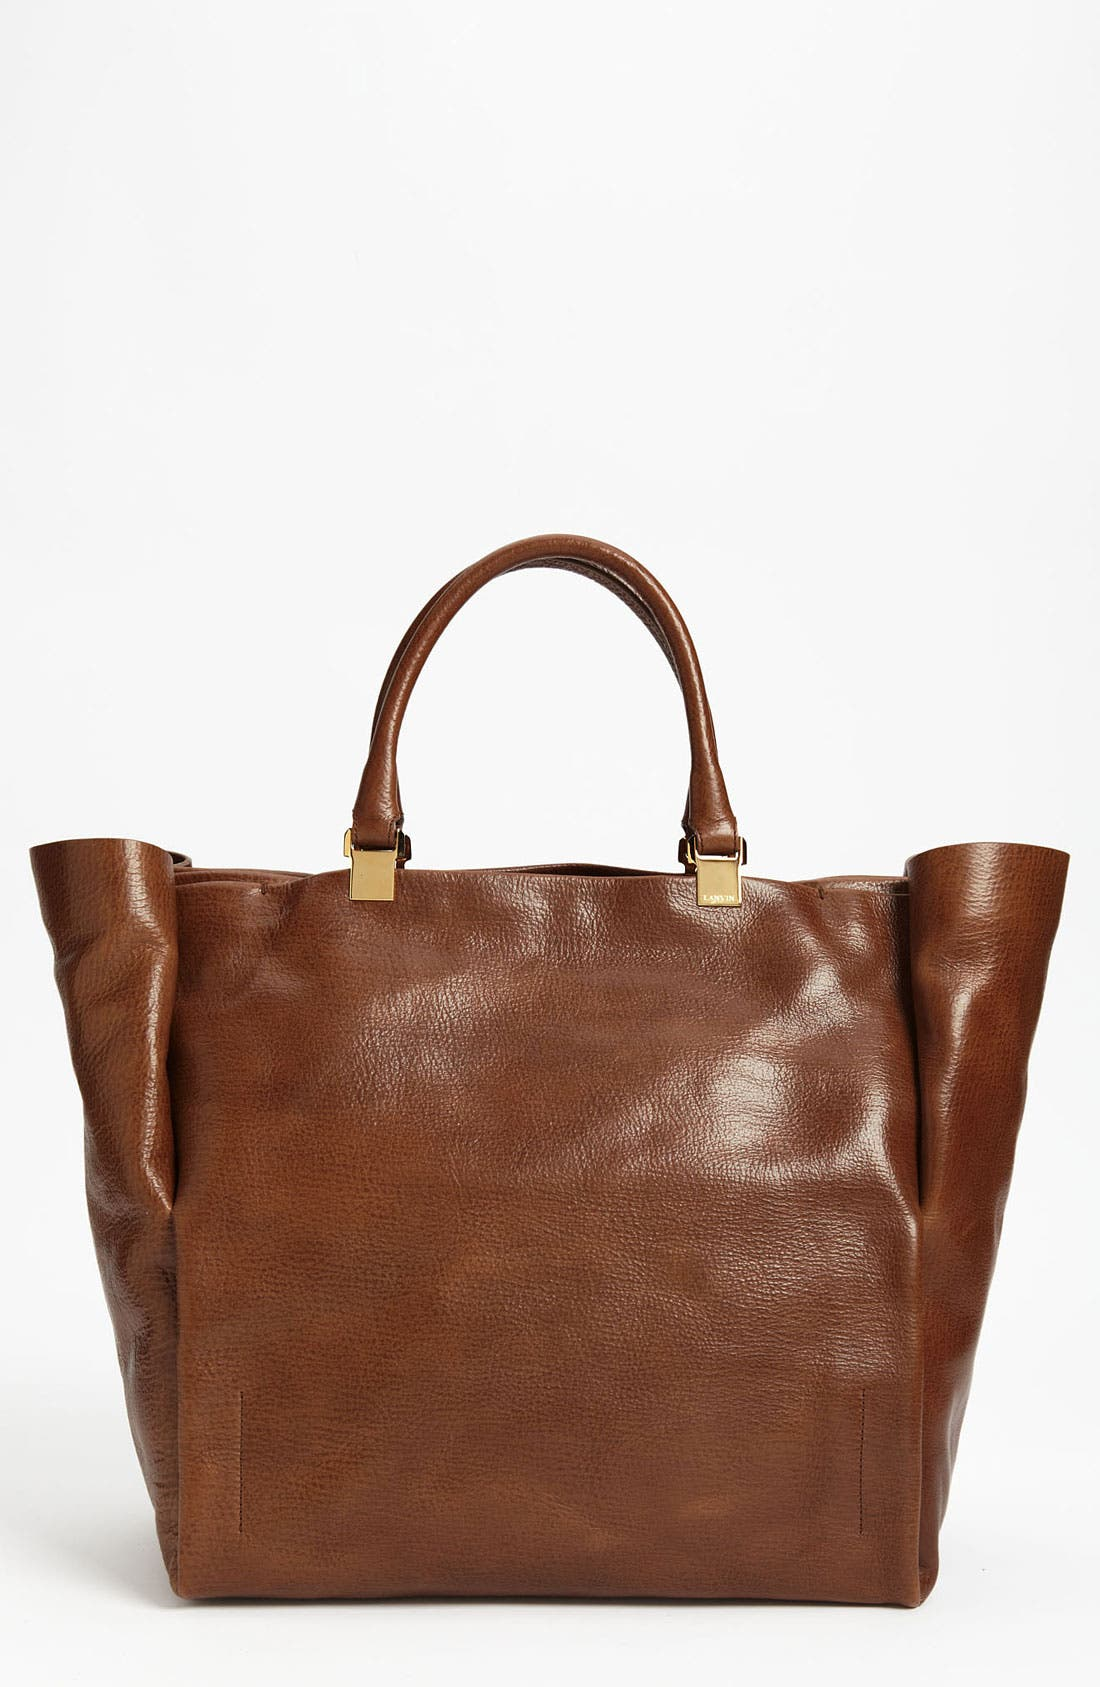 Alternate Image 1 Selected - Lanvin 'Moon River' Leather Tote